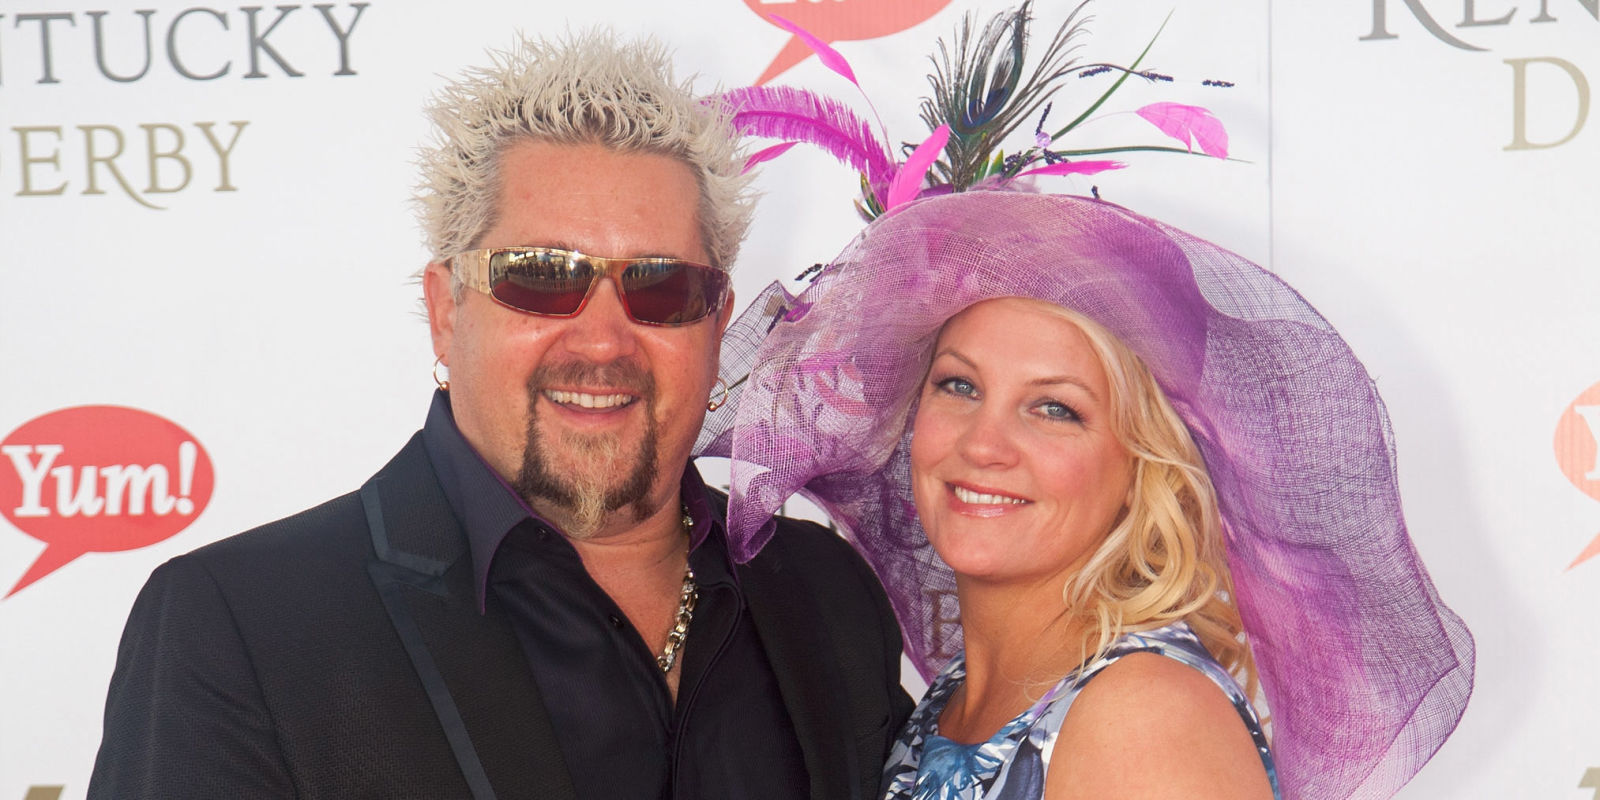 Guy Fieri. Dating + Marriage